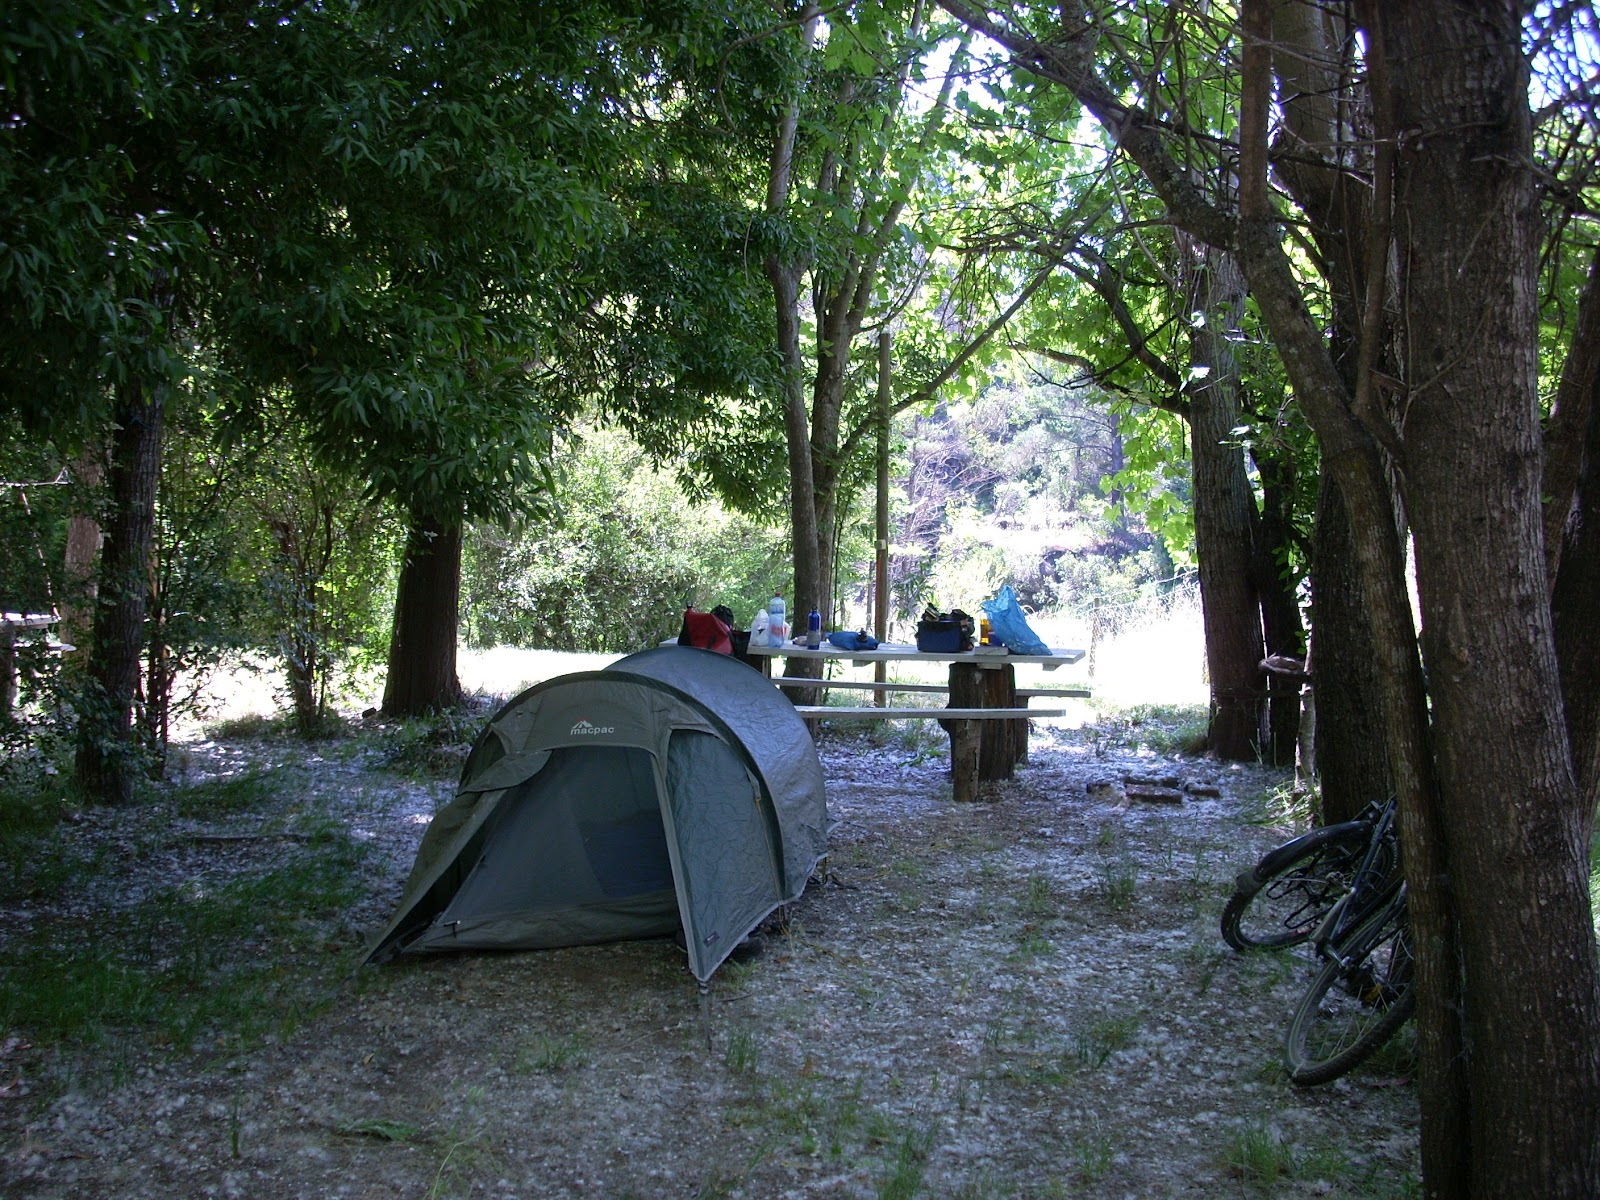 First campsite. I was the only one there. The owner told me that it would be another 3-4 weeks before most tourists showed up.